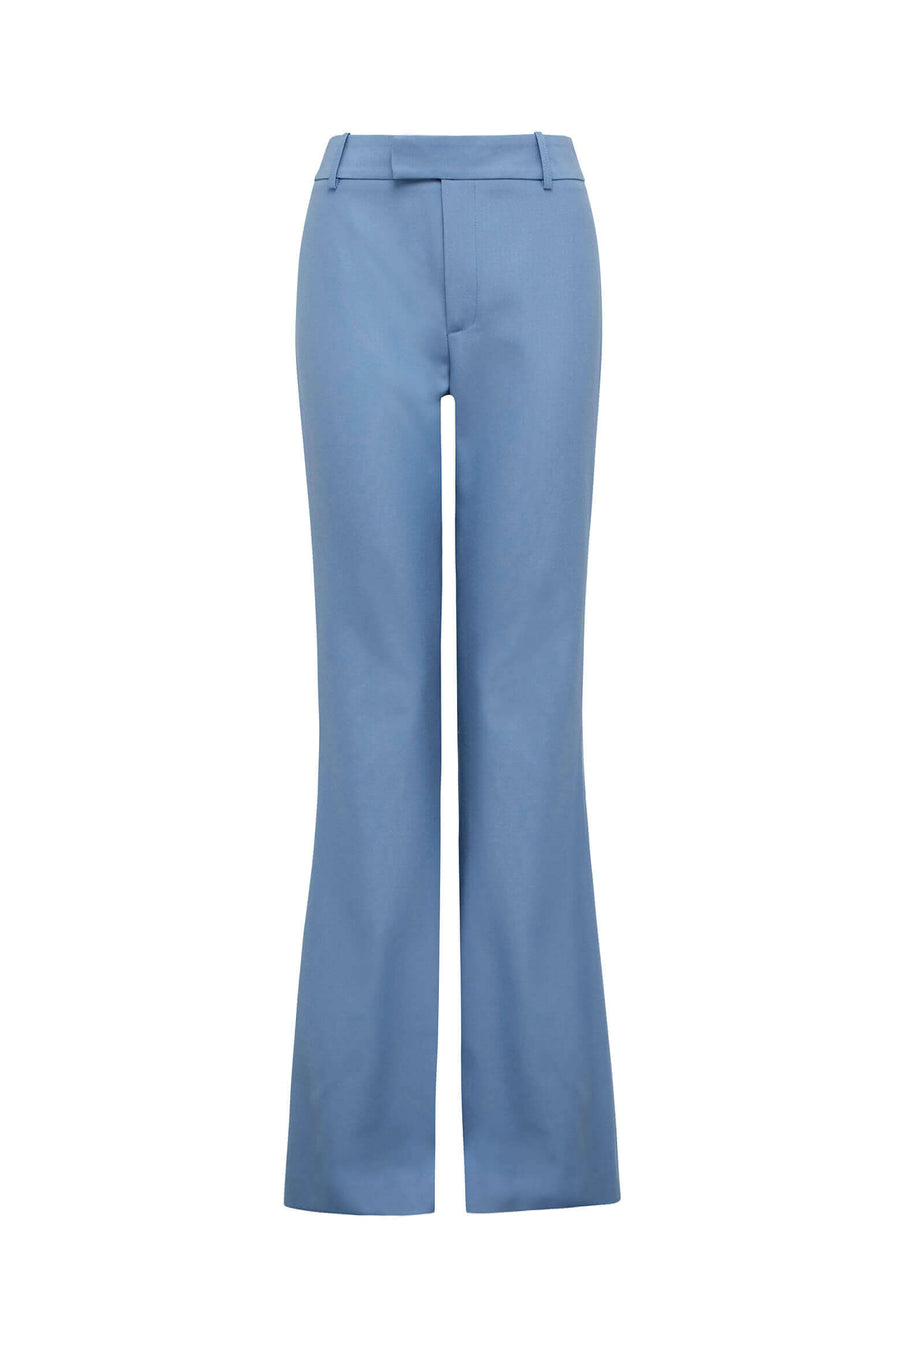 Smythe Bootcut Pant in Blue Slate from The New Trend